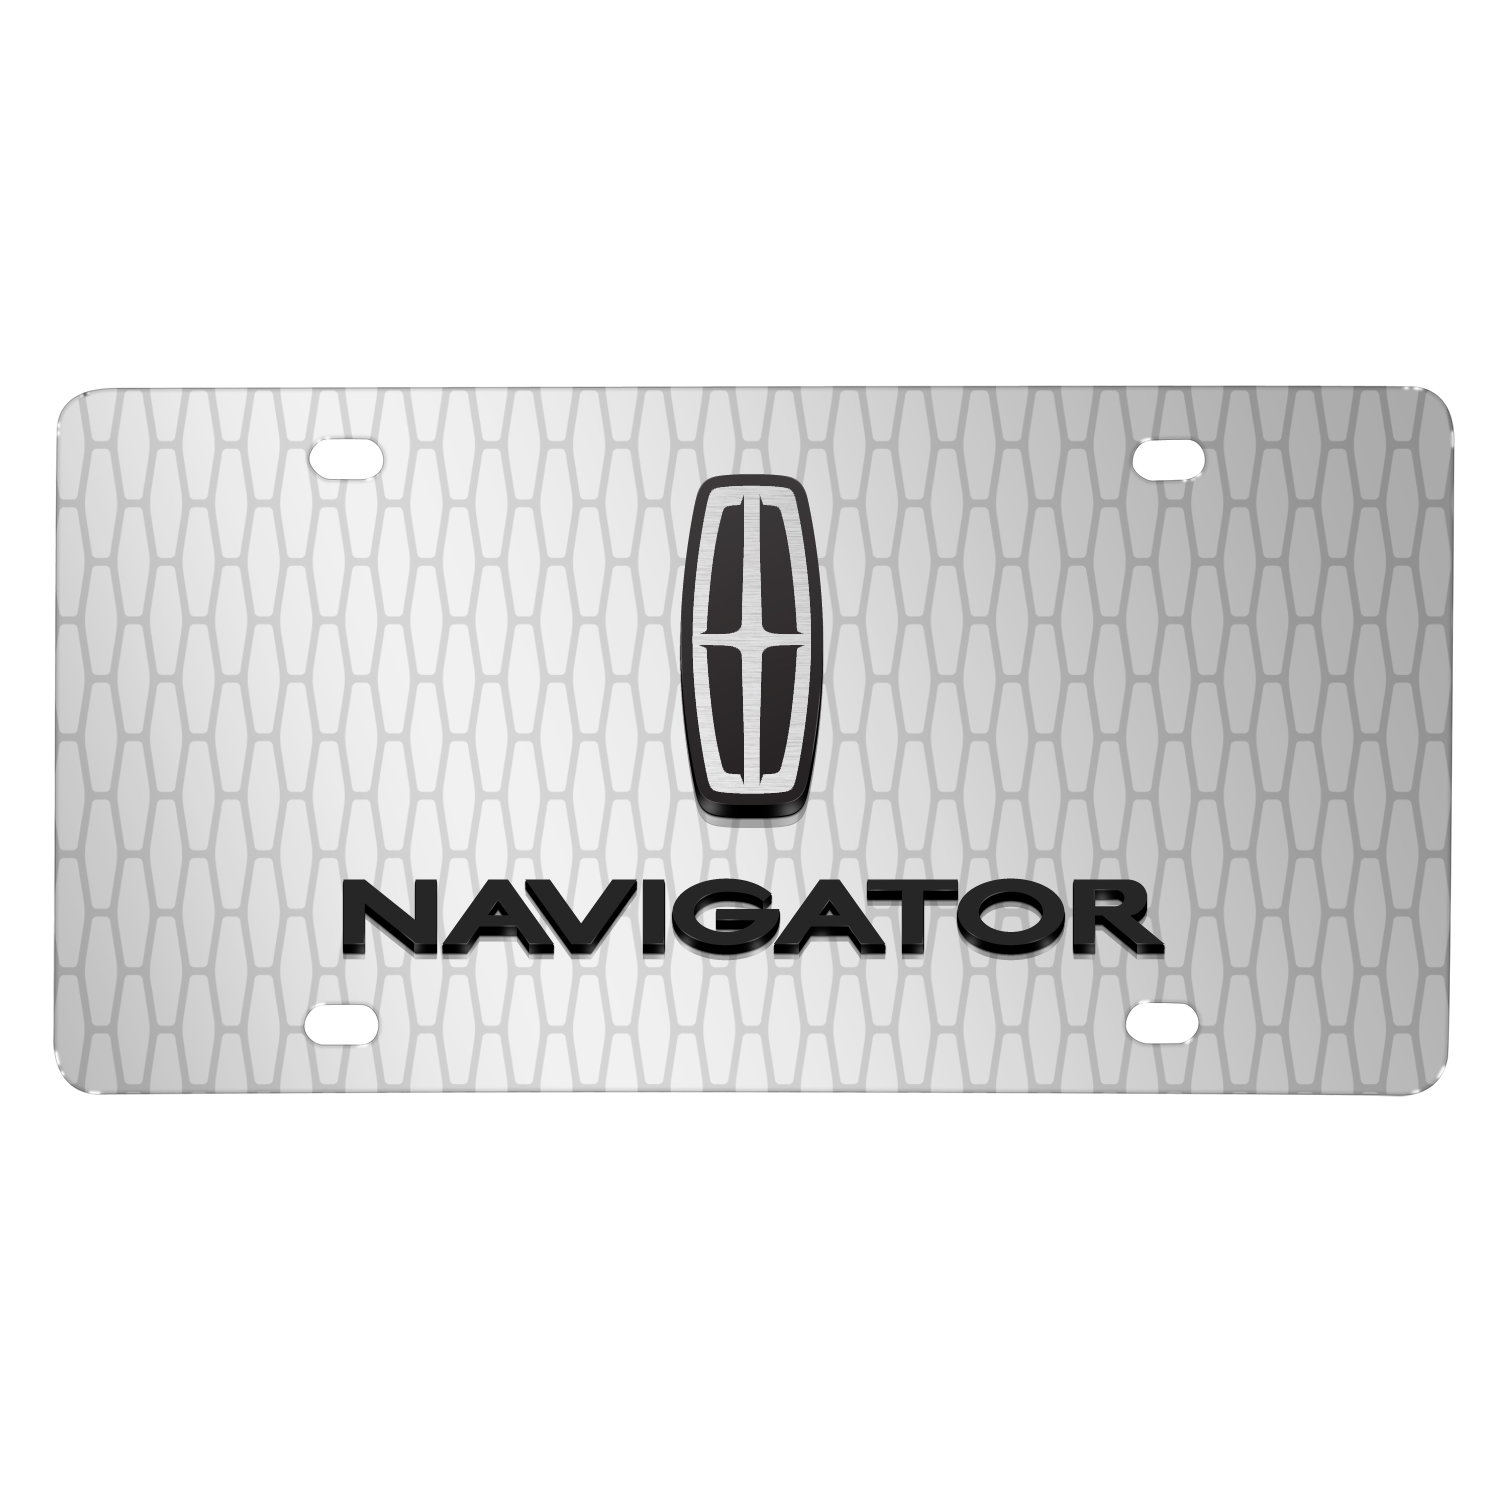 """Lincoln Navigator 3D Logo on Front Grill pattern 12""""x6"""" Brushed Aluminum License Plate"""